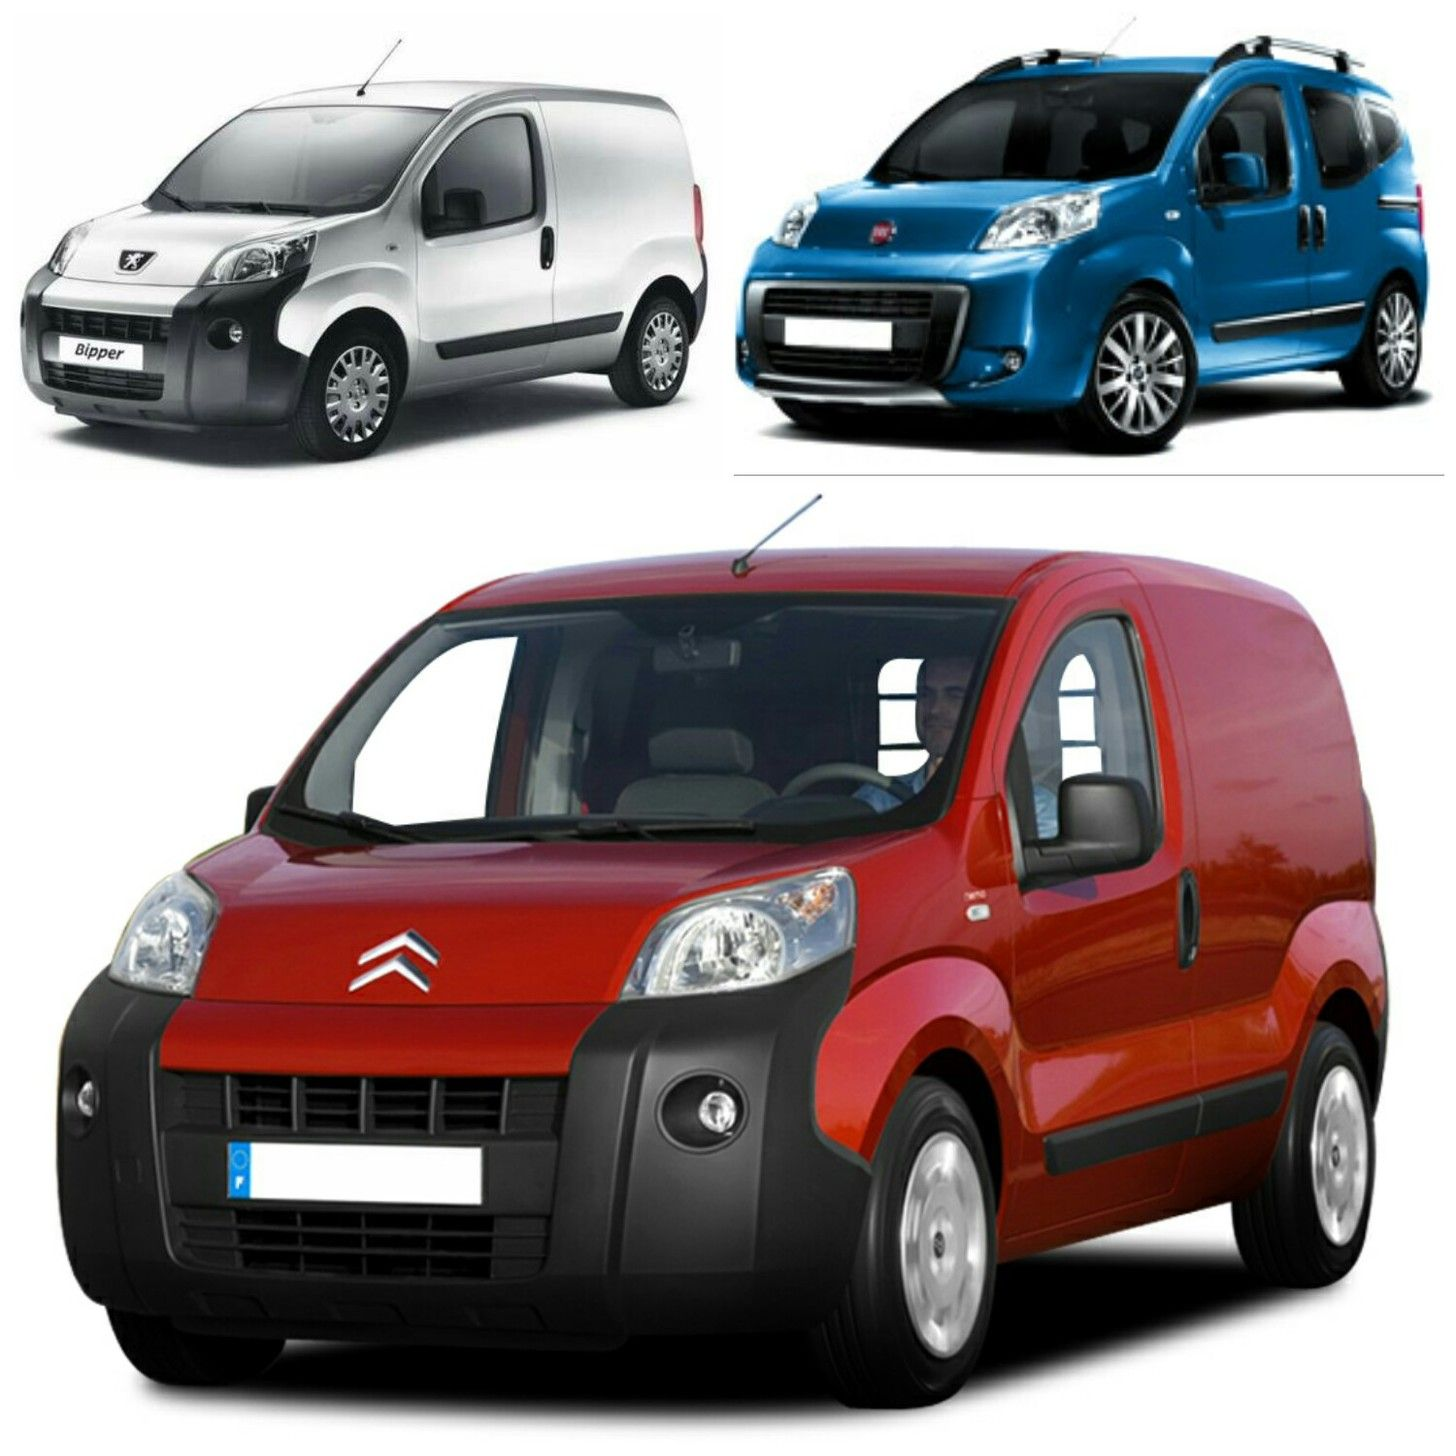 Fiat Qubo Motability Offers Schemes